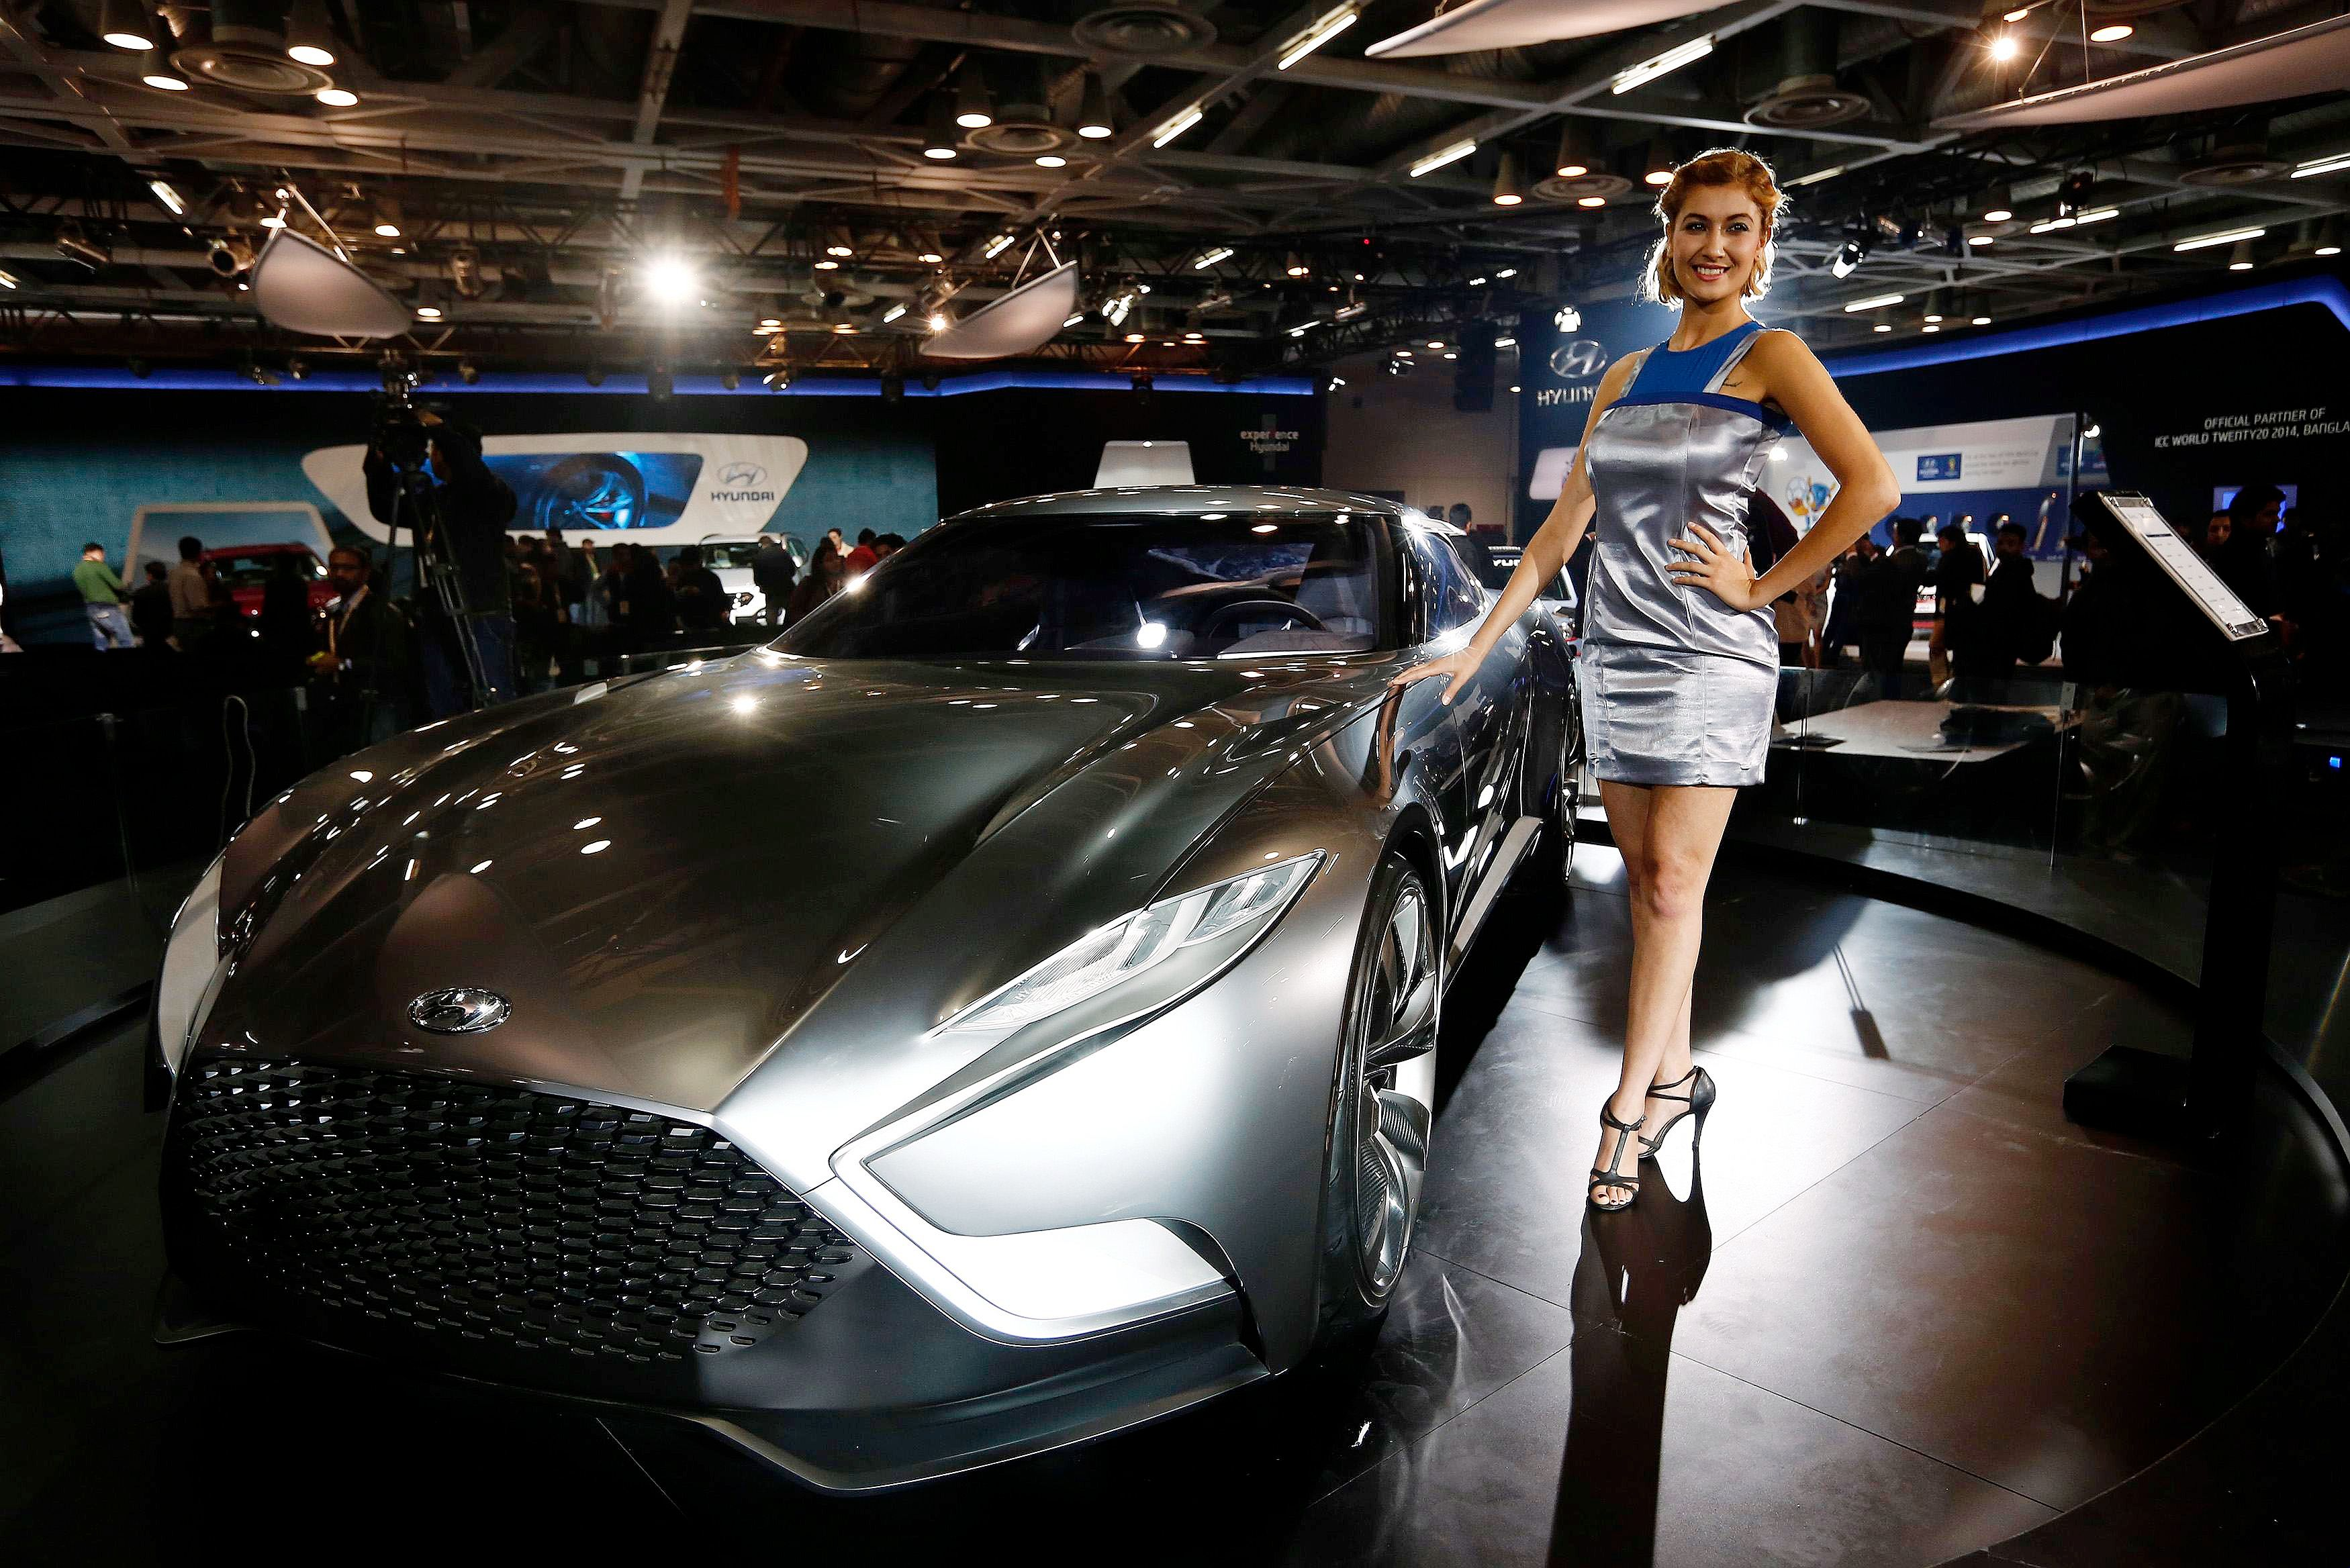 Hot Babes On Hot Wheels At Auto Expo 2014 - Indiatimescom-4475